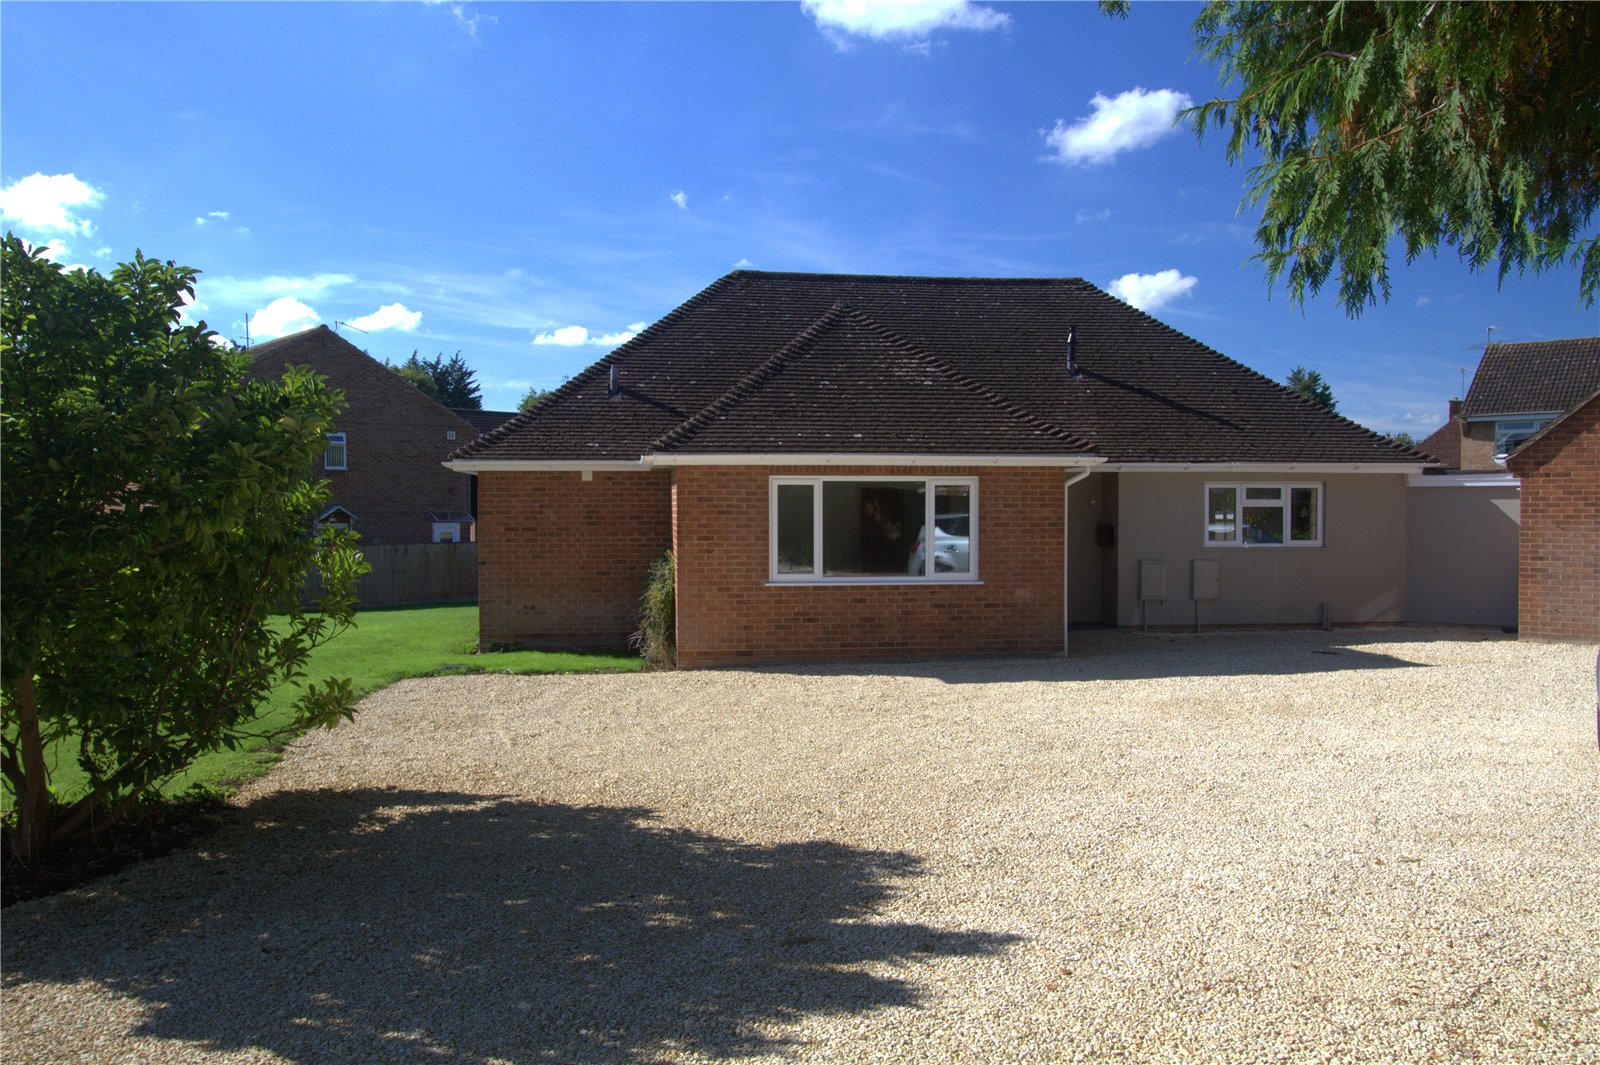 4 Bedrooms Bungalow for sale in Grove Crescent Barnwood GLOUCESTER GL4